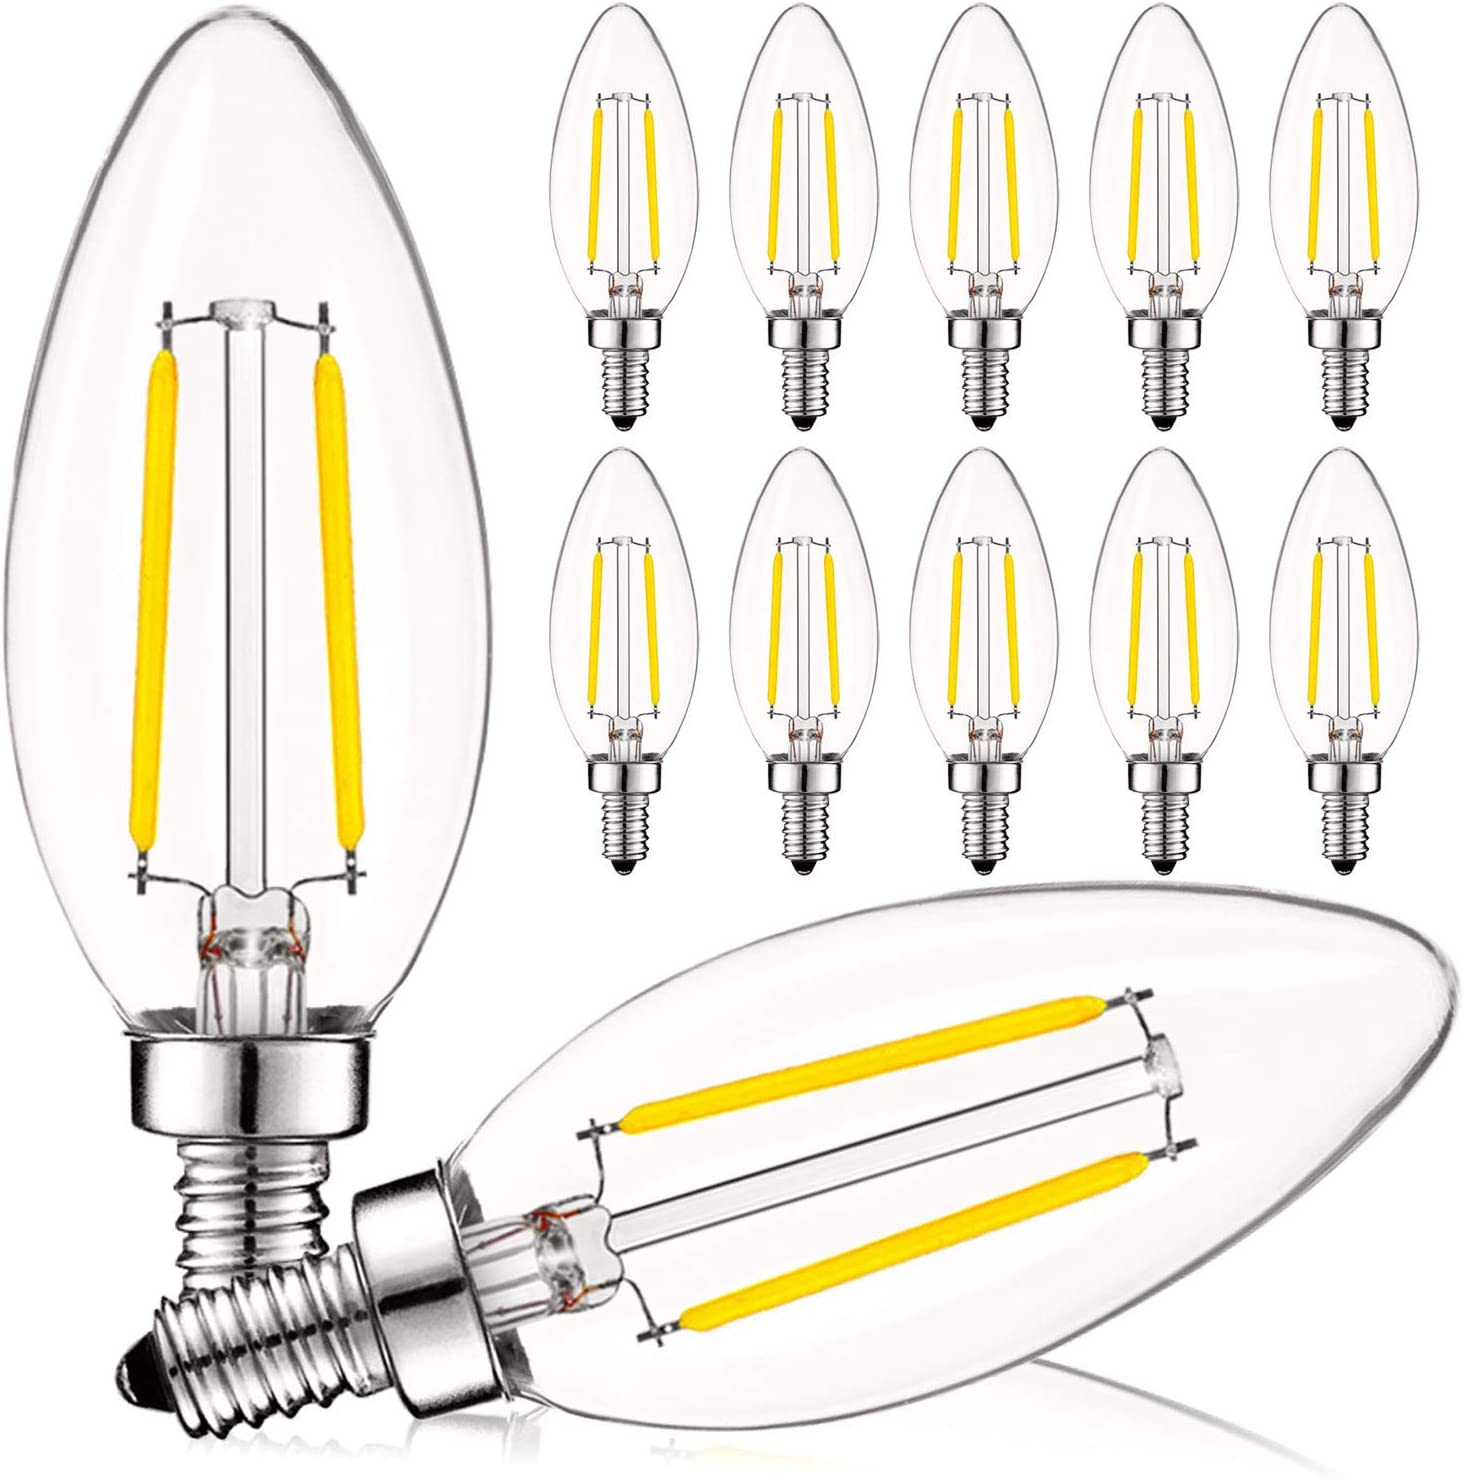 Luxrite 4w Vintage Candelabra Led Bulbs Dimmable 400 Lumens 3000k Soft White Led Chandelier Light Bulbs 40w Equivalent Clear Glass Filament Led Candle Bulb Ul Listed E12 Base 12 Pack Amazon Com